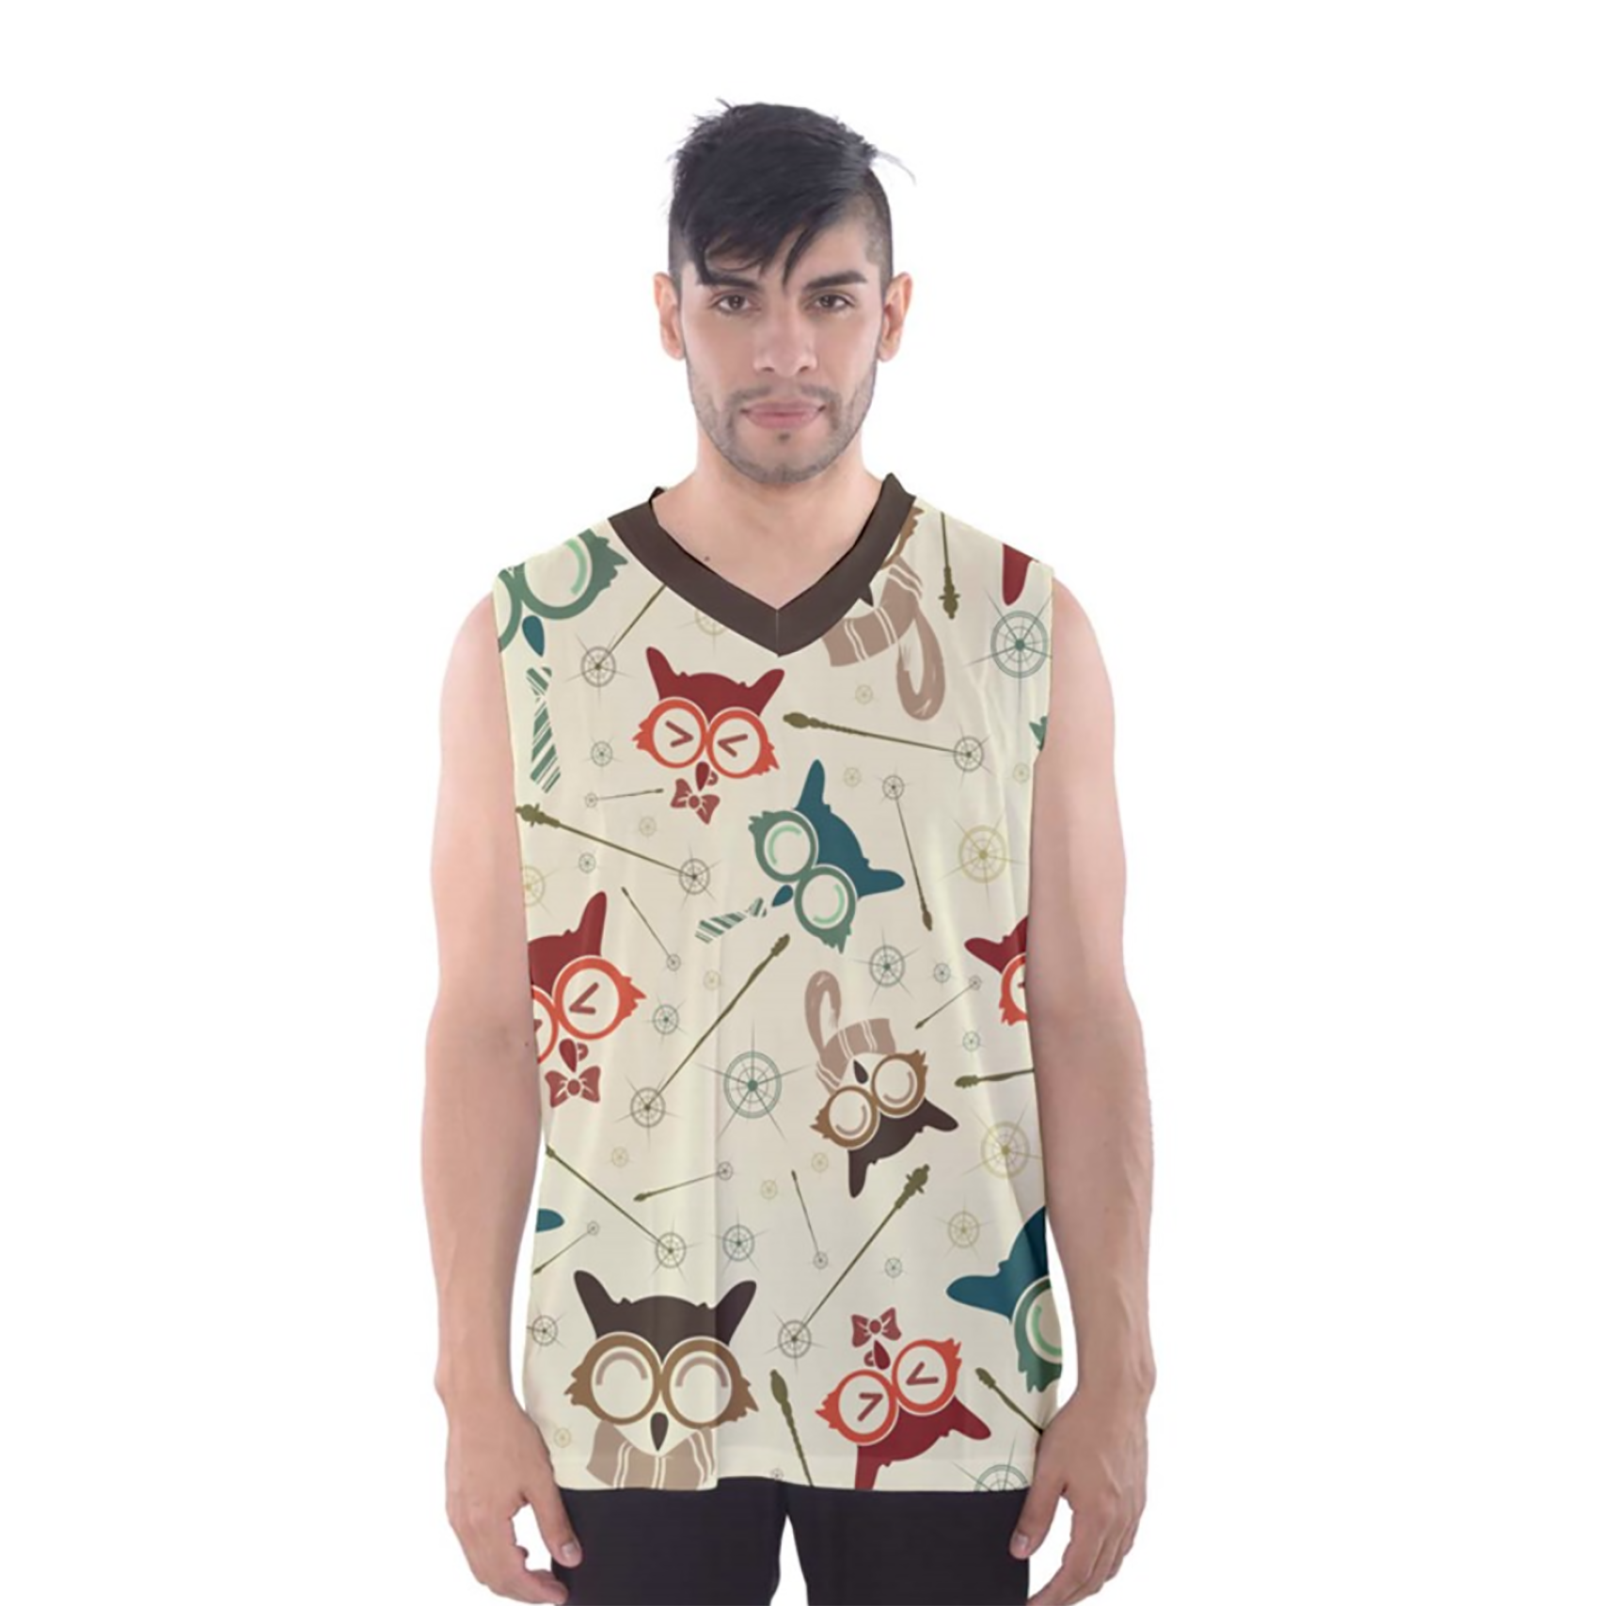 Vintage Emoji Owl Men's Tank Top (Patterned)